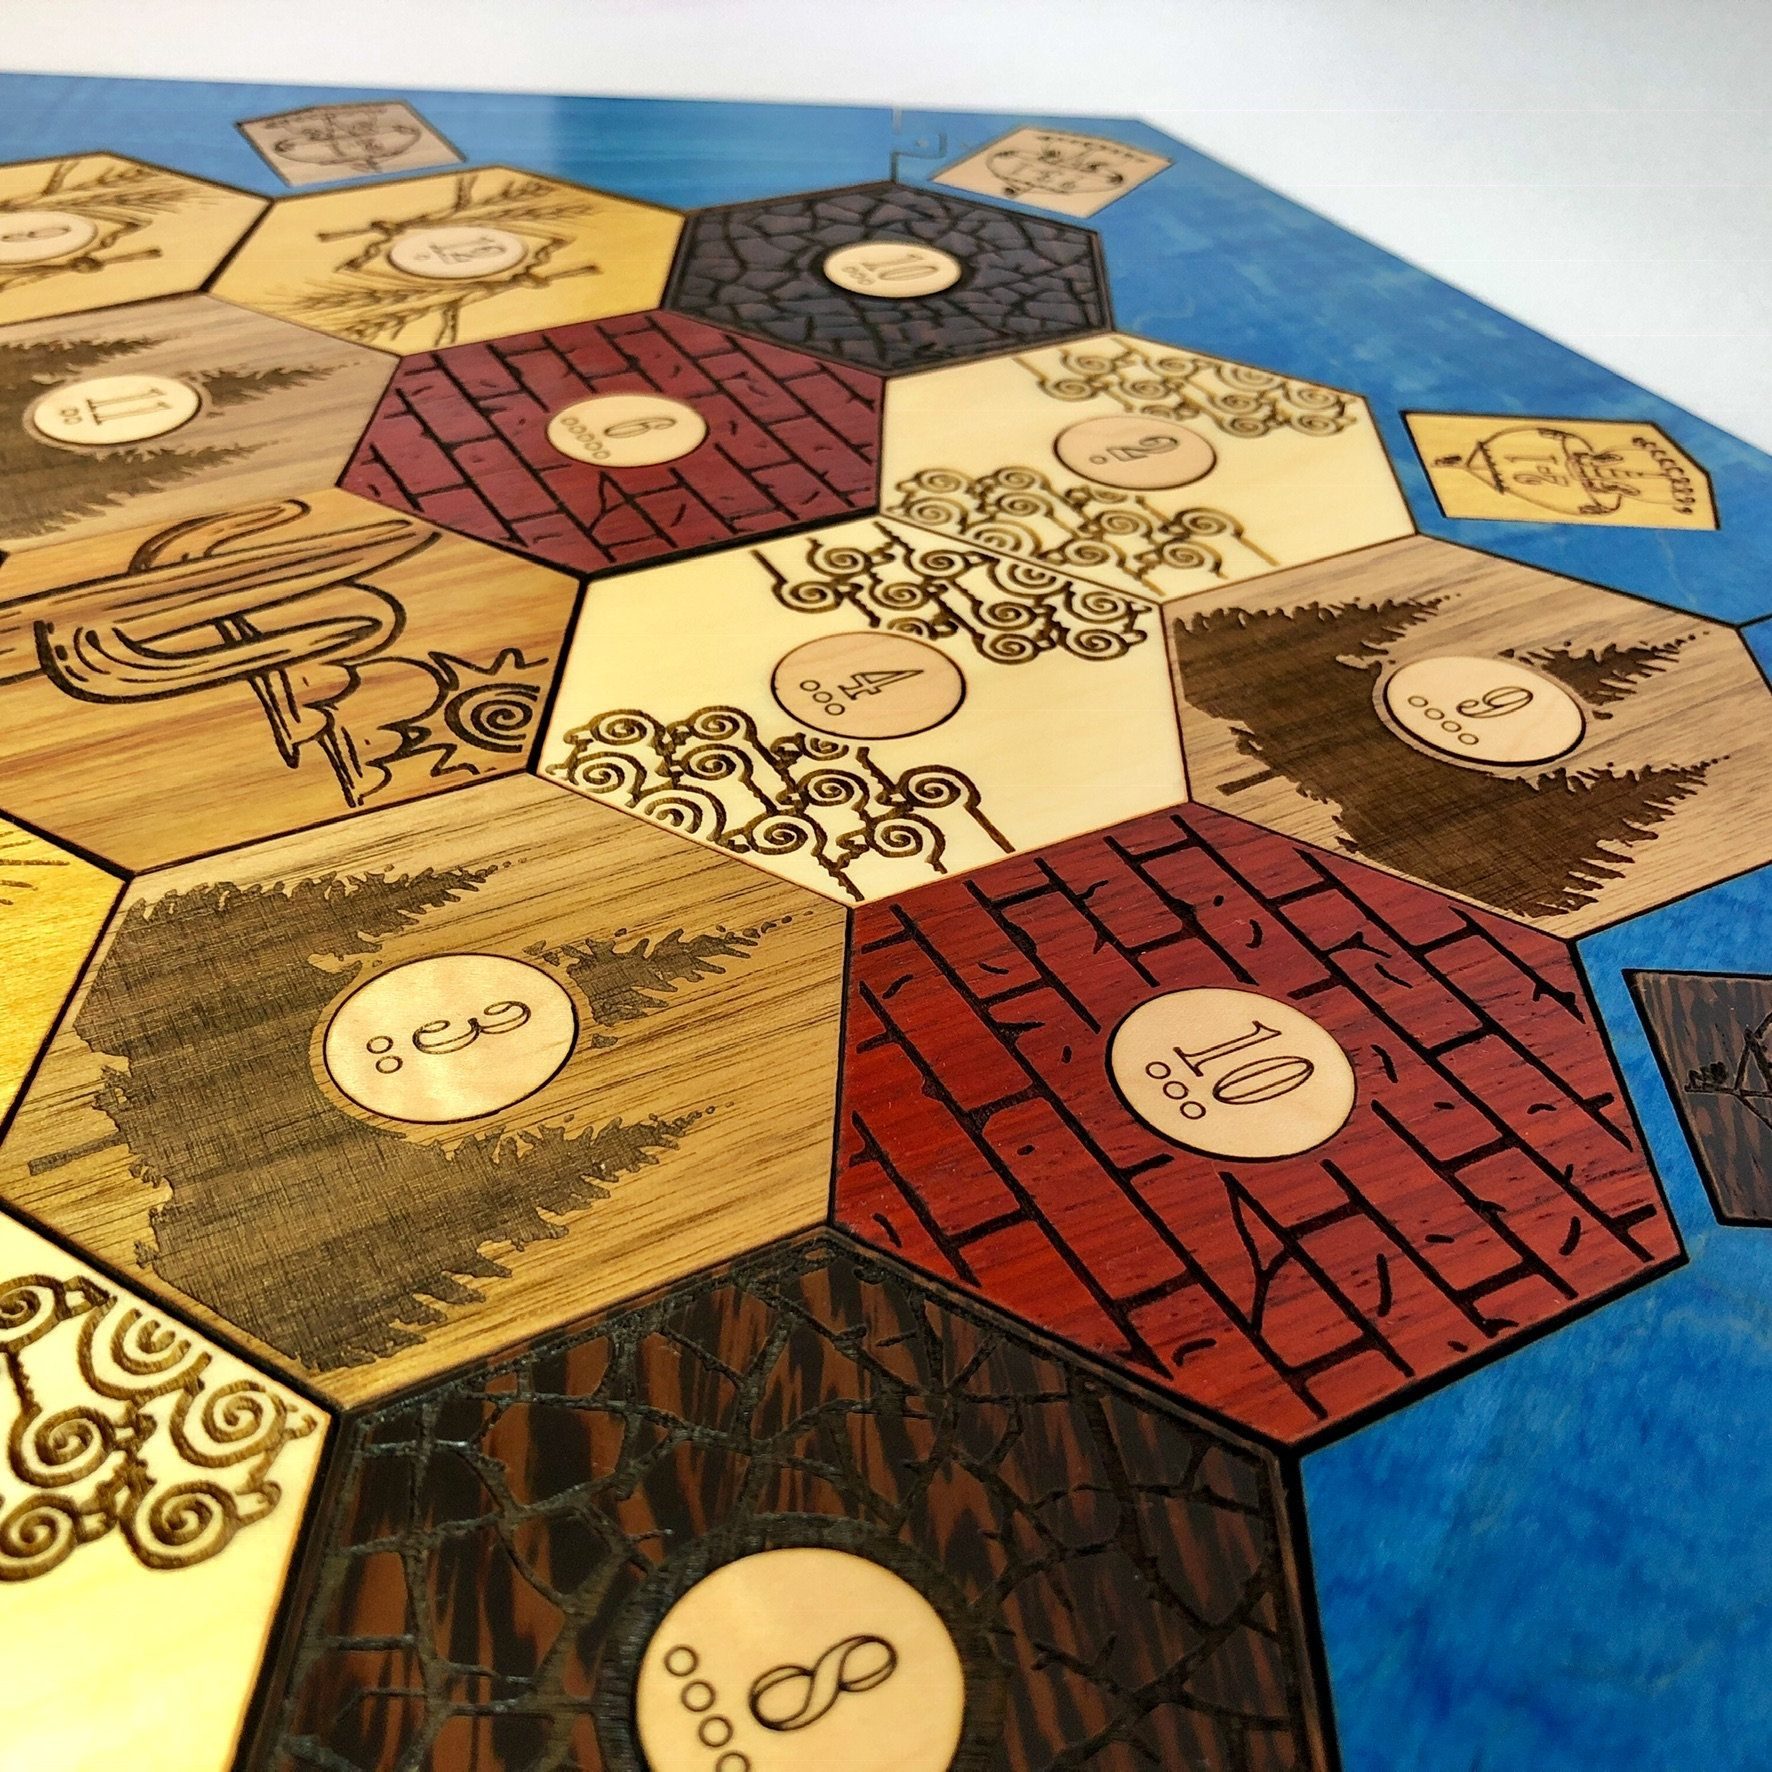 34 Player Heirloom Hardwood Catan Board Supplemental